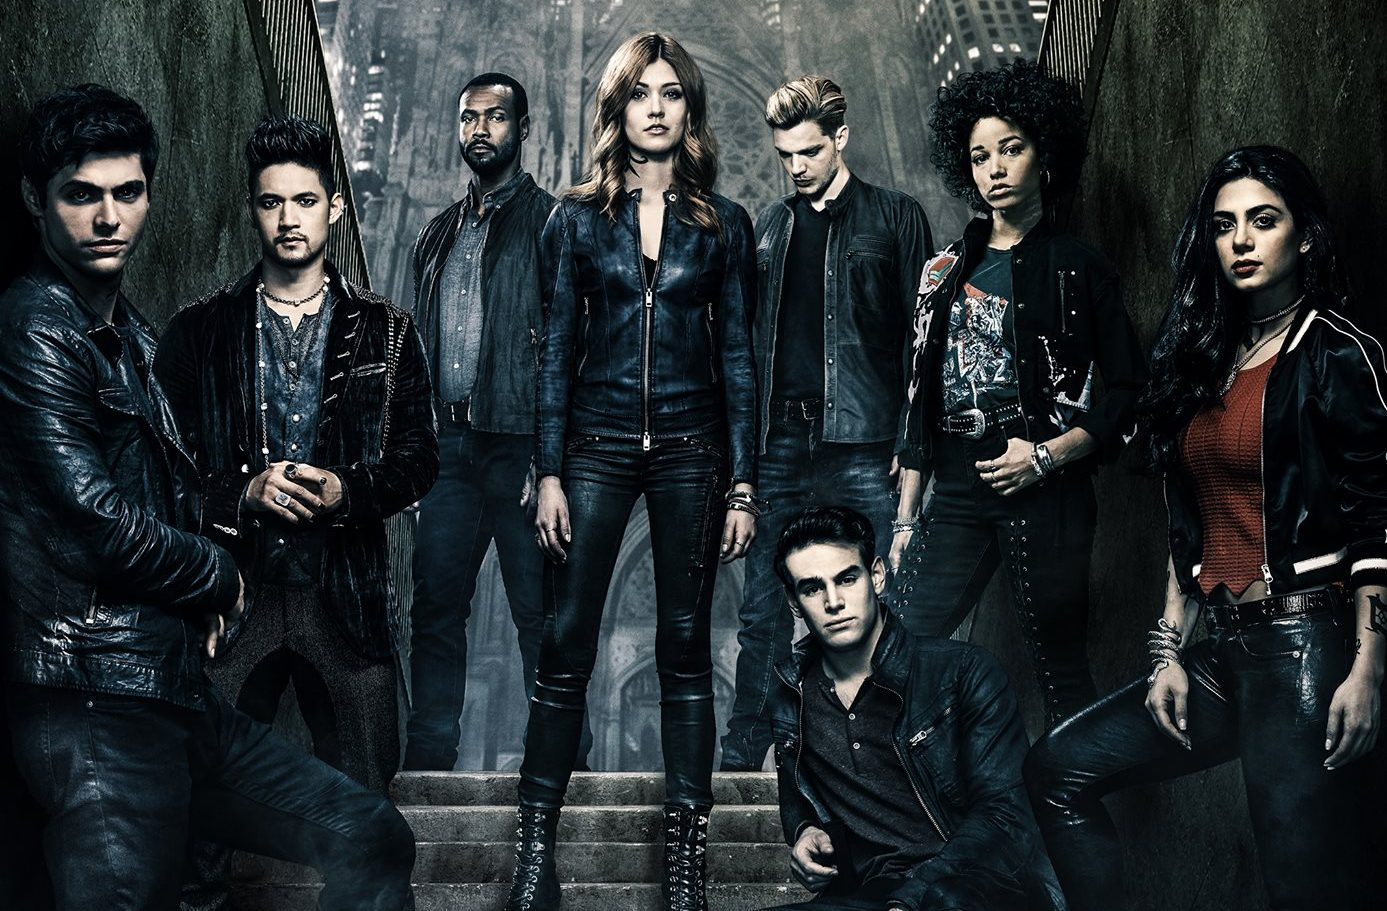 Shadowhunters season 3 cast